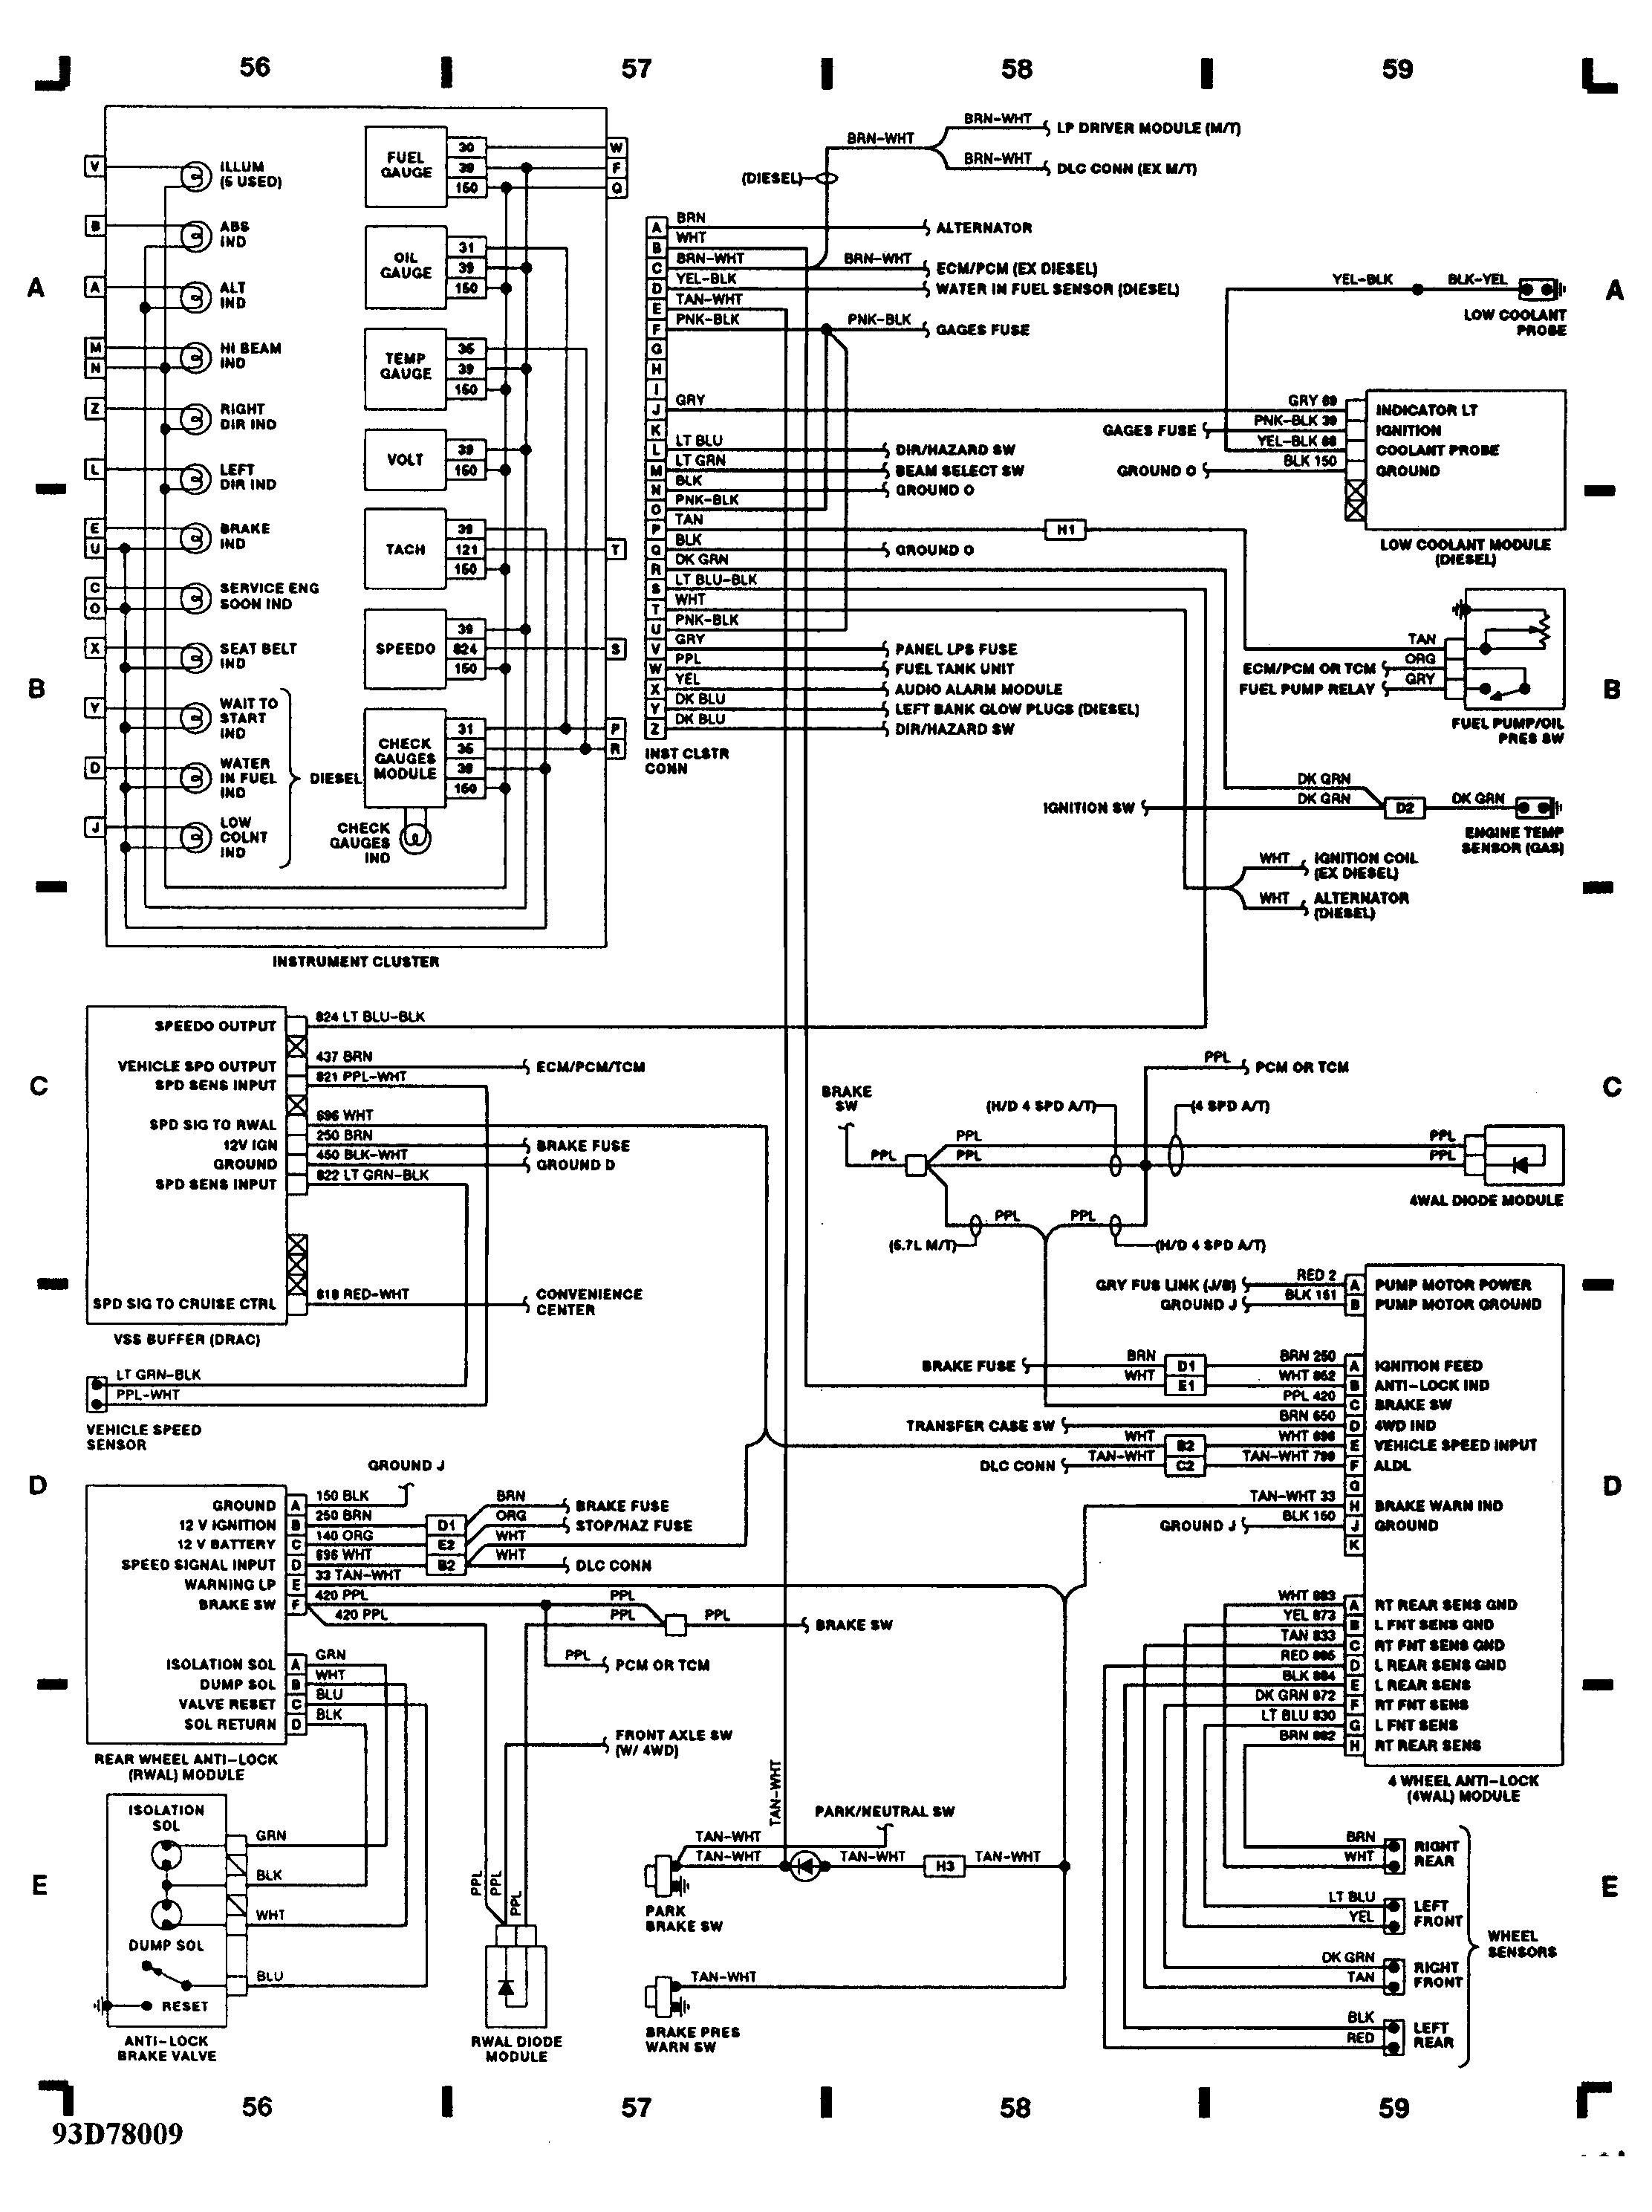 Chevy Astro Van Ac Wiring Diagram Library Ignition Engine 5 7 Vortec 4 3l Diagrams